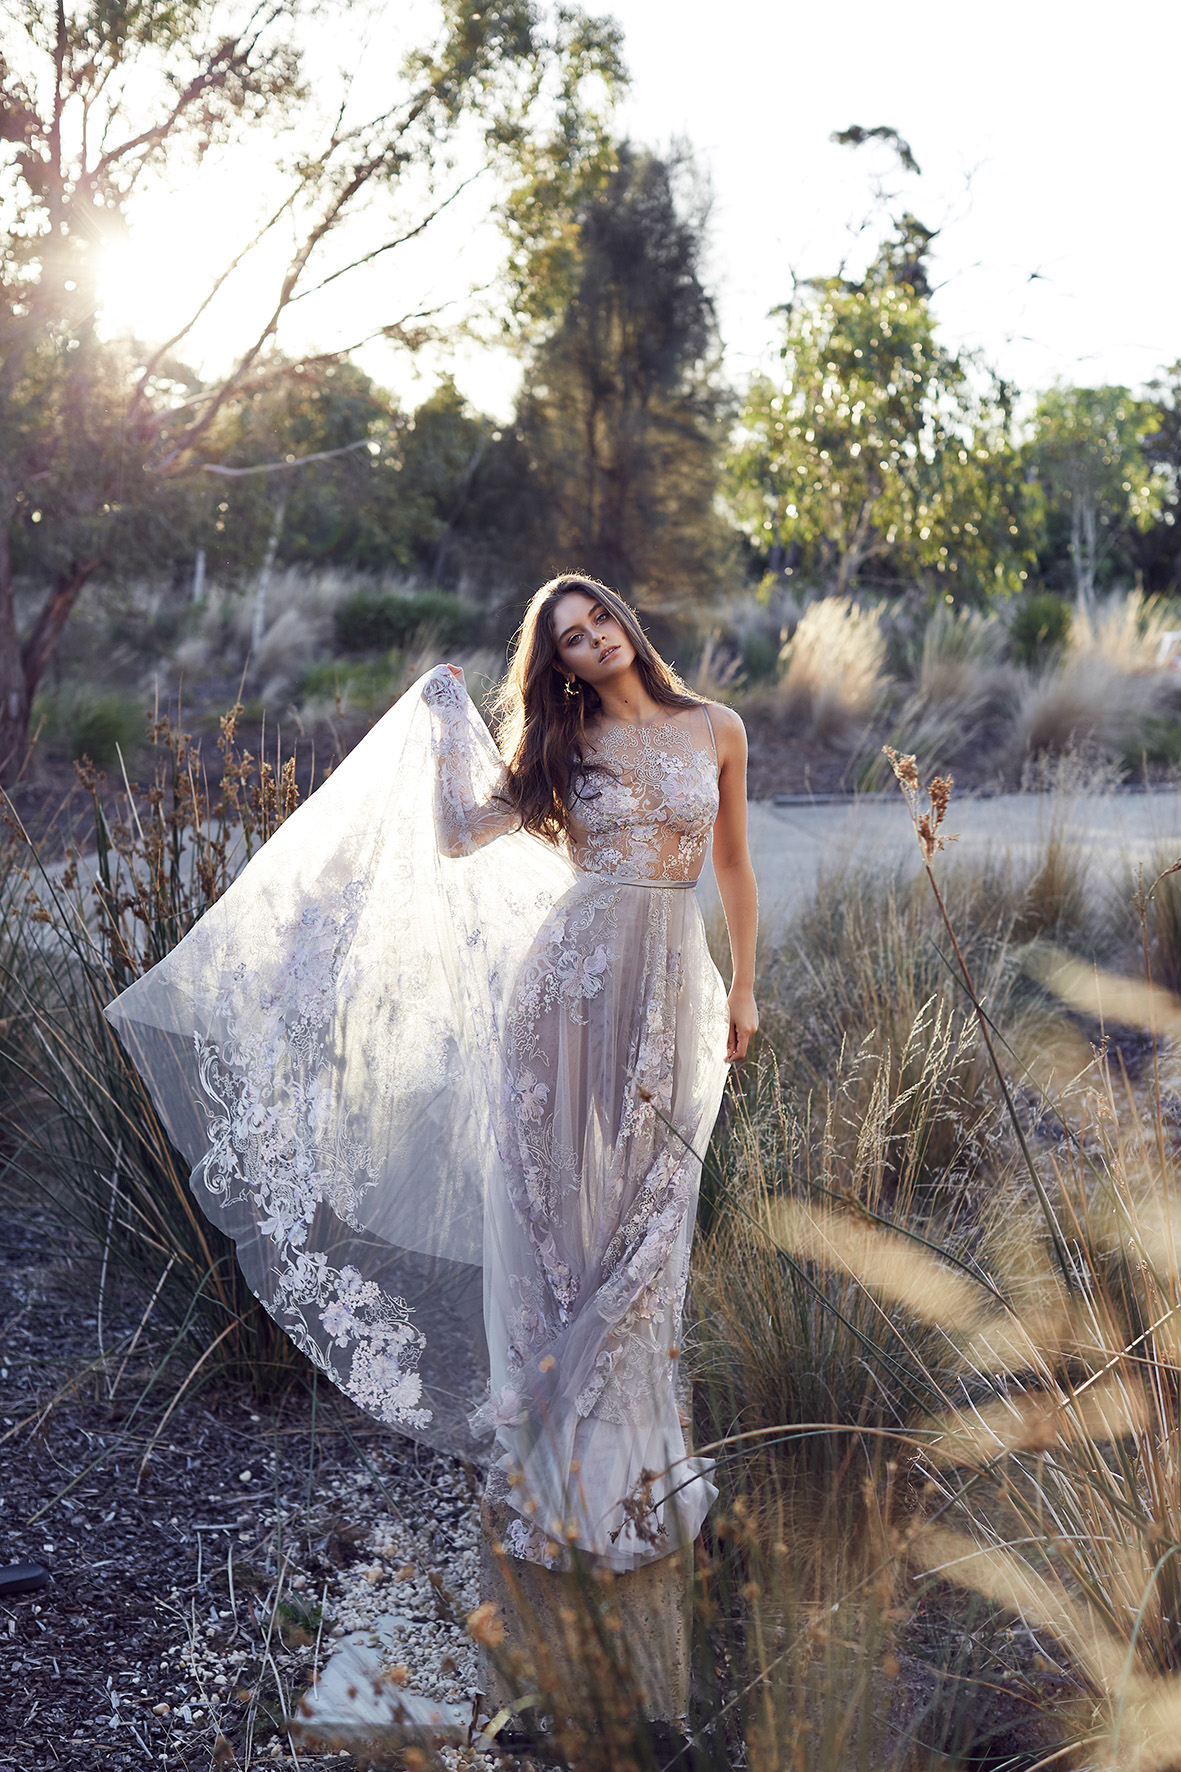 Lost In Love Photography Suzanne Harward Australian fashion wedding photography